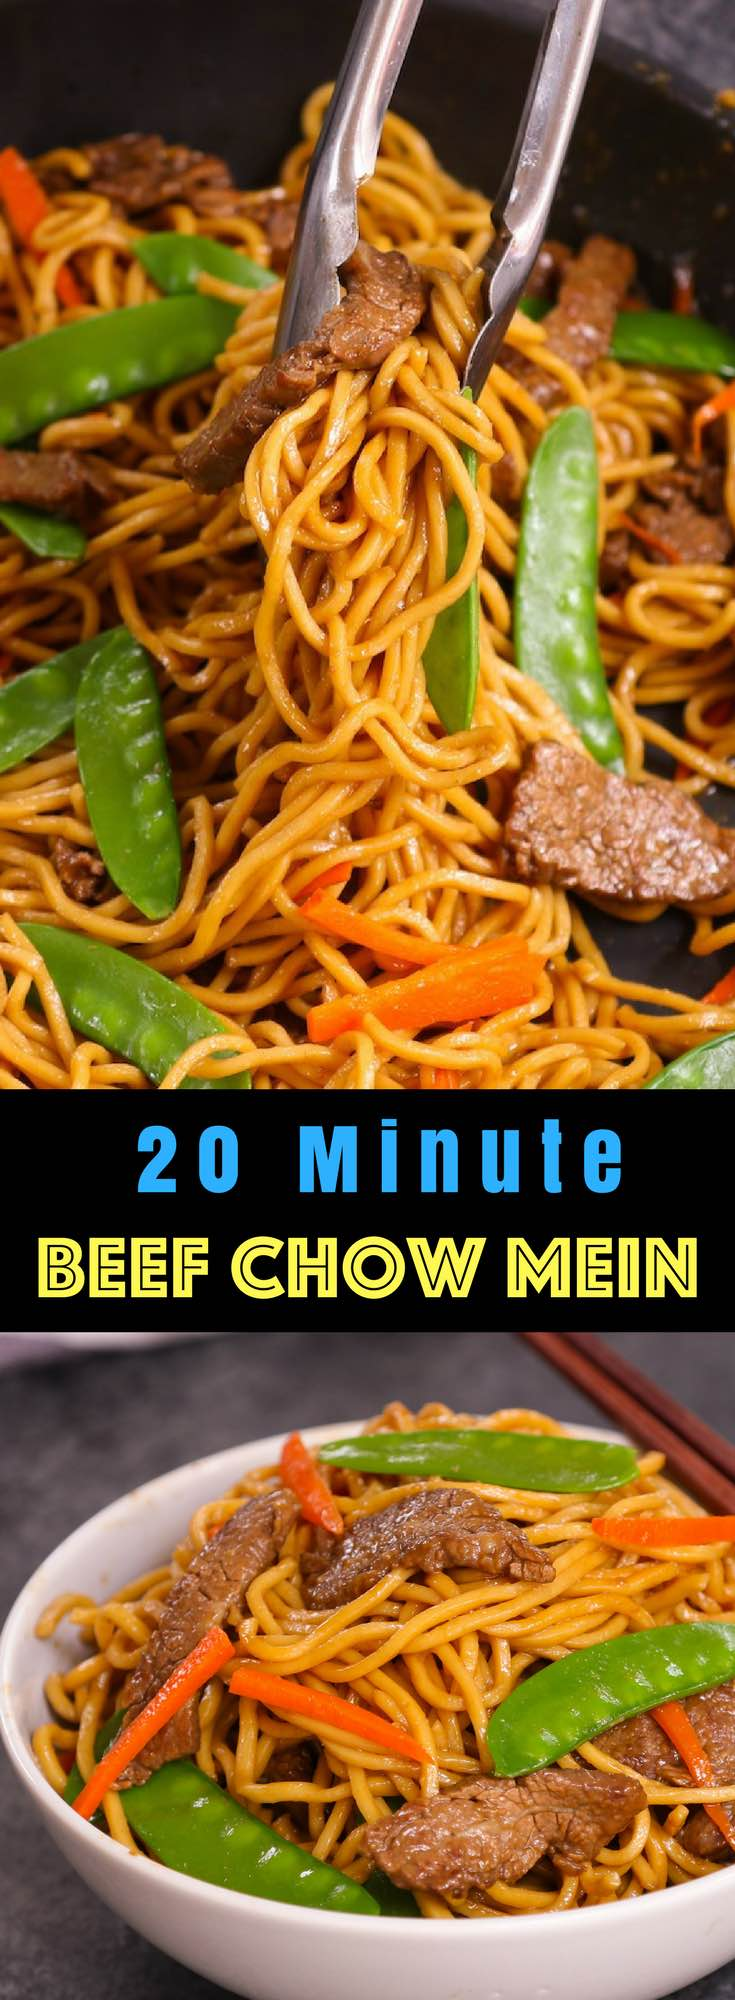 This Beef Chow Mein is a quick and easy one pot meal loaded with tender beef, flavorful vegetables and fried noodles. It comes together in just 20 minutes for a delicious weeknight dinner the entire family will love...#BeefChowMein